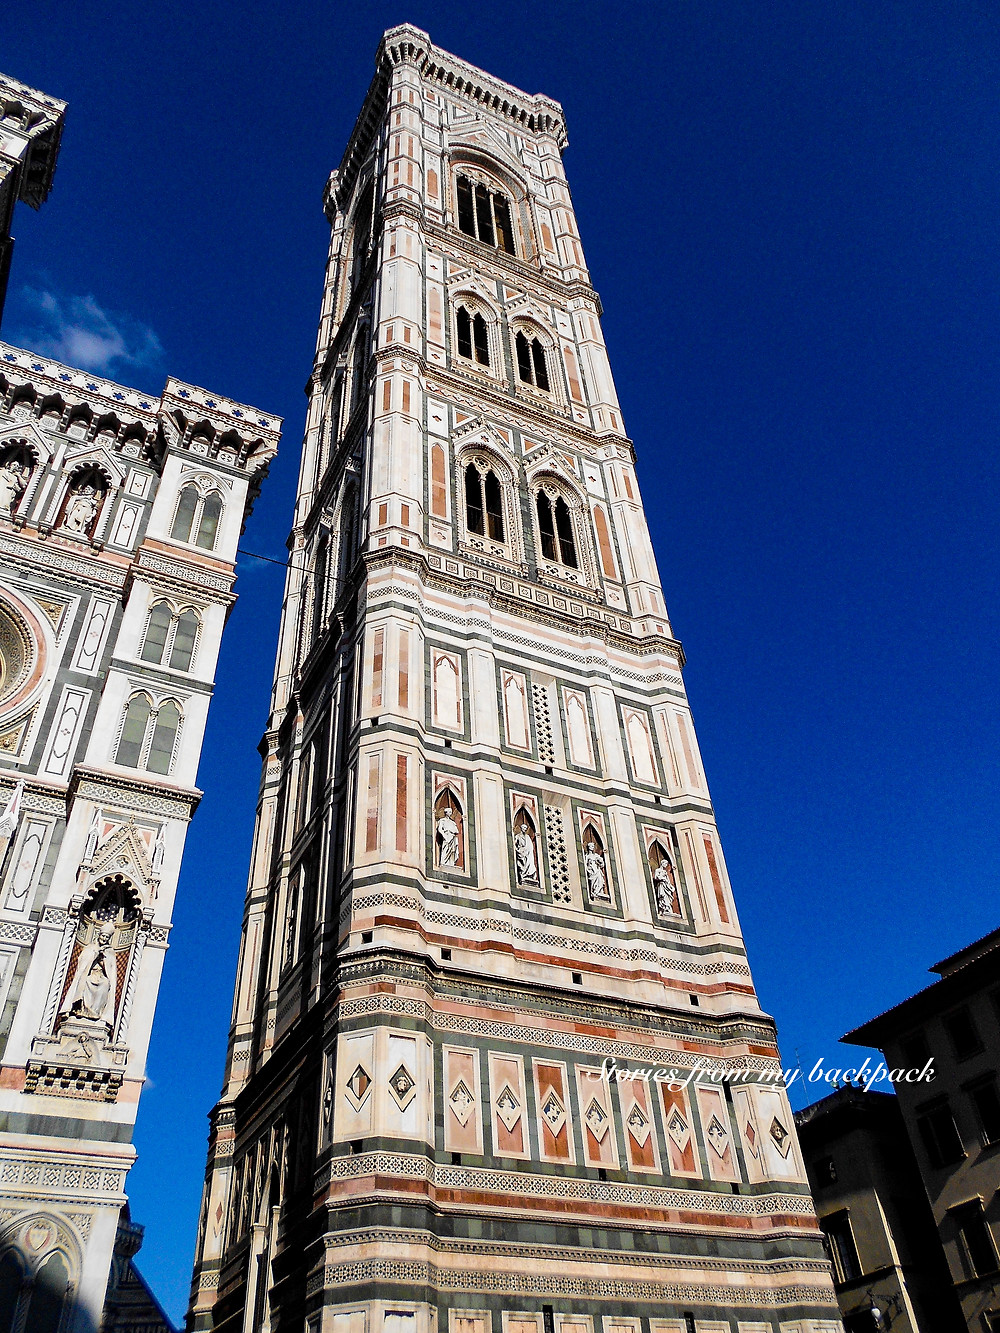 Giotto's Campanile, Best view of Florence, Must do things in Florence, Florence for romantics, romantic Florence, Florence tour